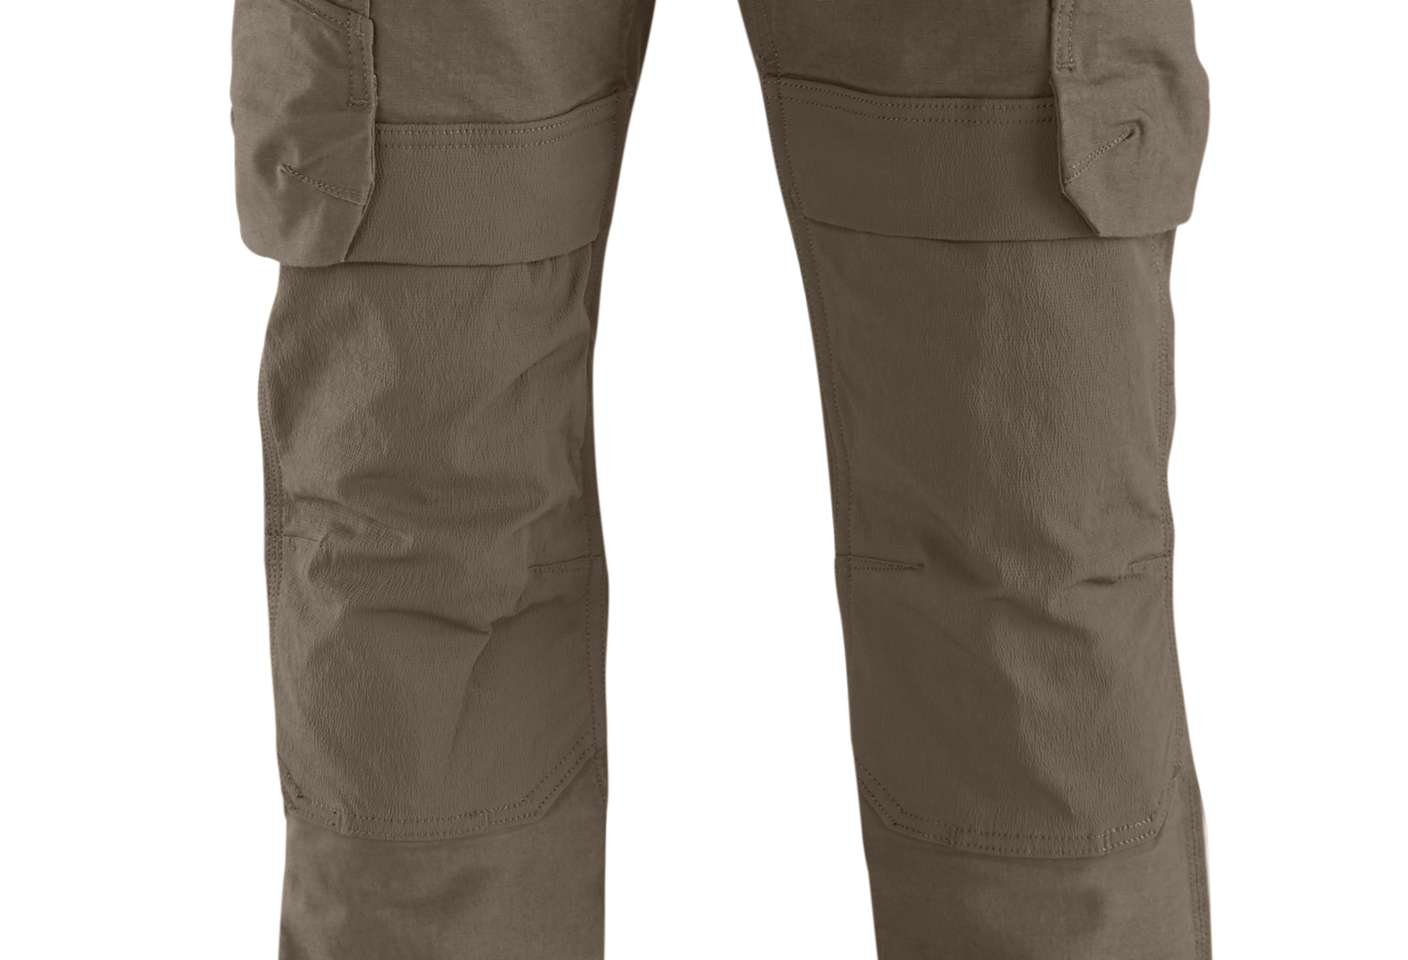 Utility cargo pockets on both legs for extra gear